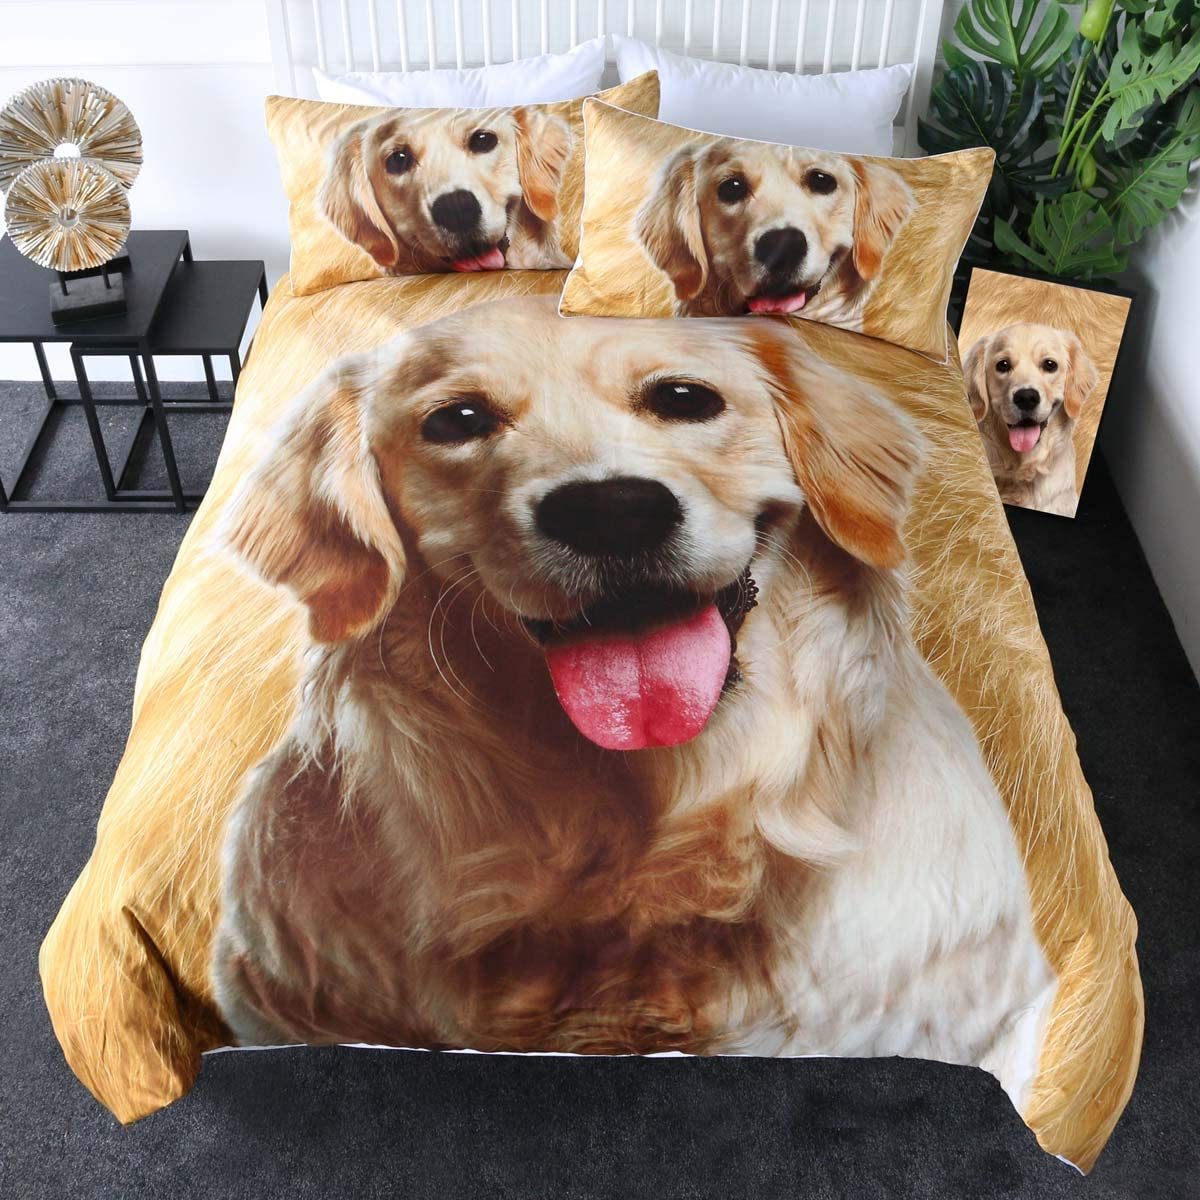 Sleepwish Golden Retriever Bedding Puppy Dog Comforter Cover 3D Pet Themed Animal Lover Duvet Cover Set 3 Piece Brown Tan and White (Twin)